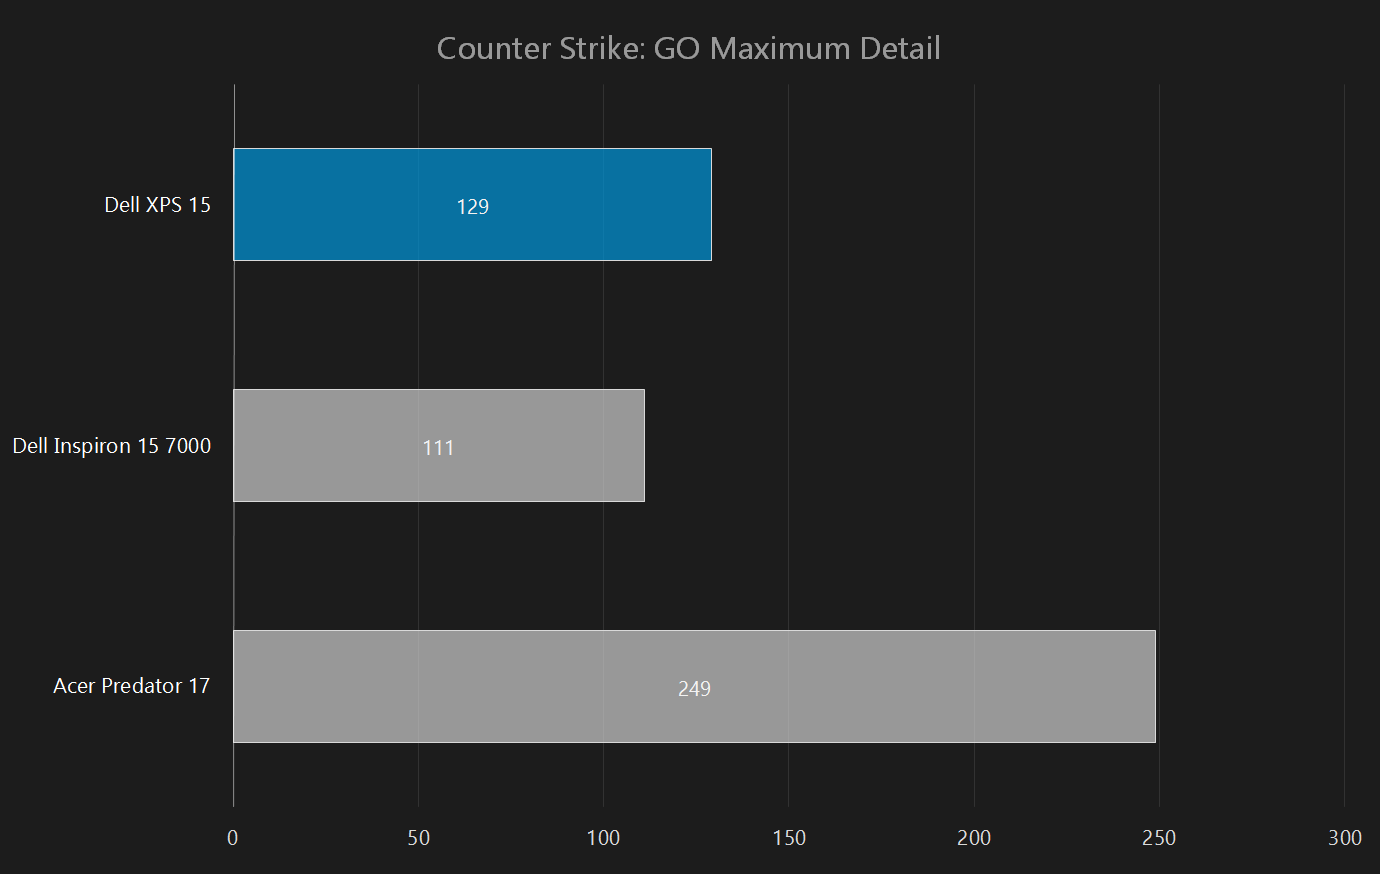 dell xps 15 2015 review counter strike 1080p